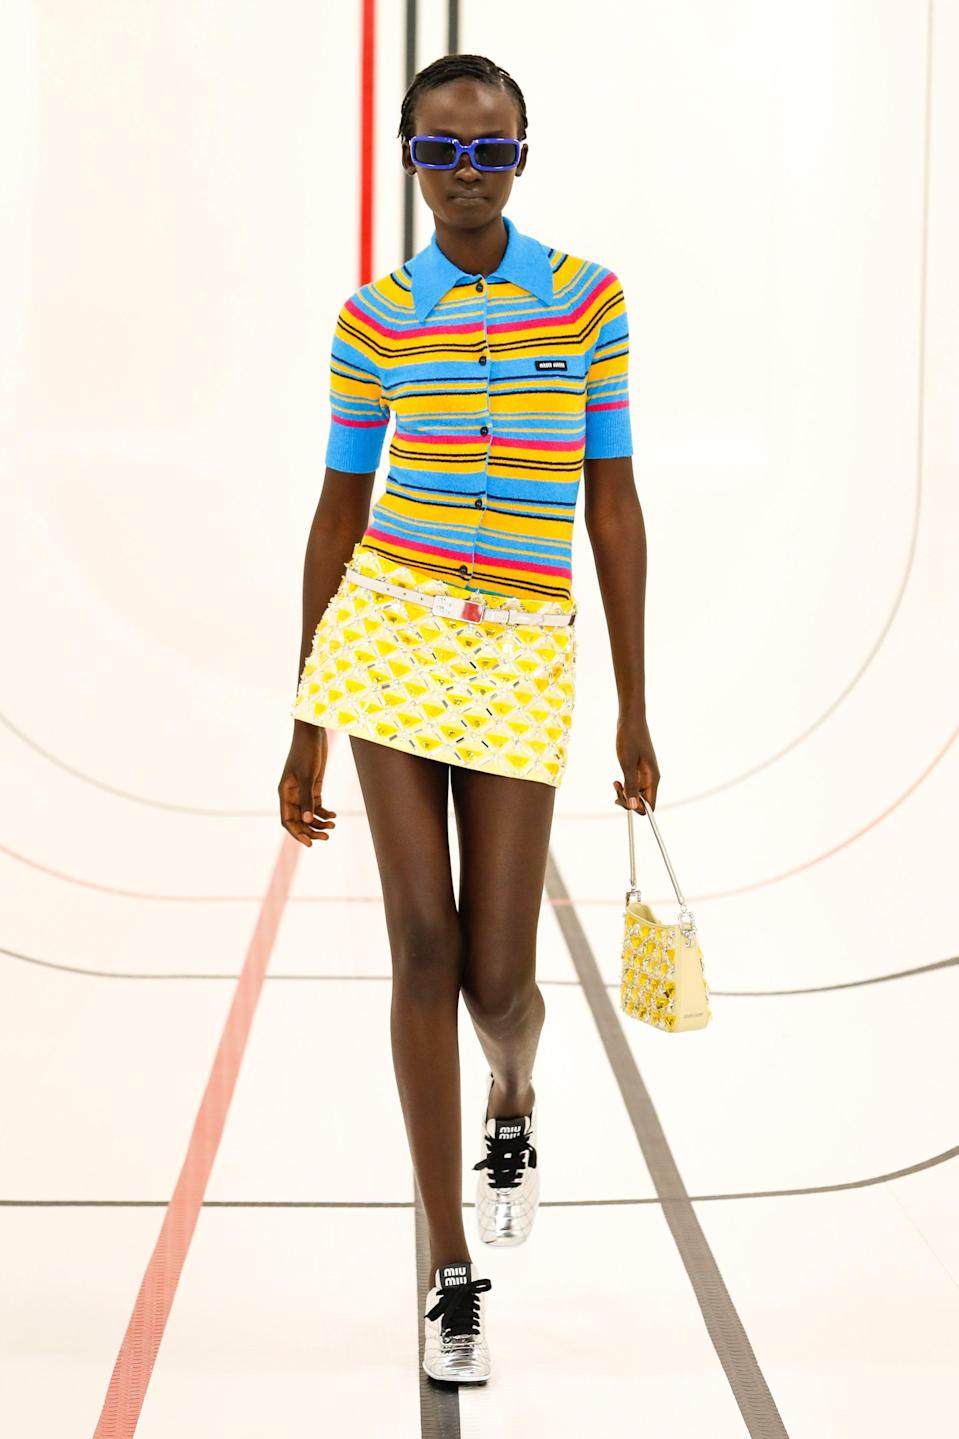 """<h2>Micro-Minis</h2><br>Mrs. Prada continued to fight against bulky, layered-on fashion with the reintroduction of micro-mini skirts and -dresses at her Miu Miu show. And like the equally revealing midriff-baring tops, minis were popular across the board, with ultra-short bottoms also presented at Giambattista Valli, Hermes, Isabel Marant, and Coperni, among others. You heard it here first: 2021 will be known as the year of the gams. <br><br><em>Miu Miu</em><span class=""""copyright"""">Photo Courtesy of Miu Miu.</span>"""